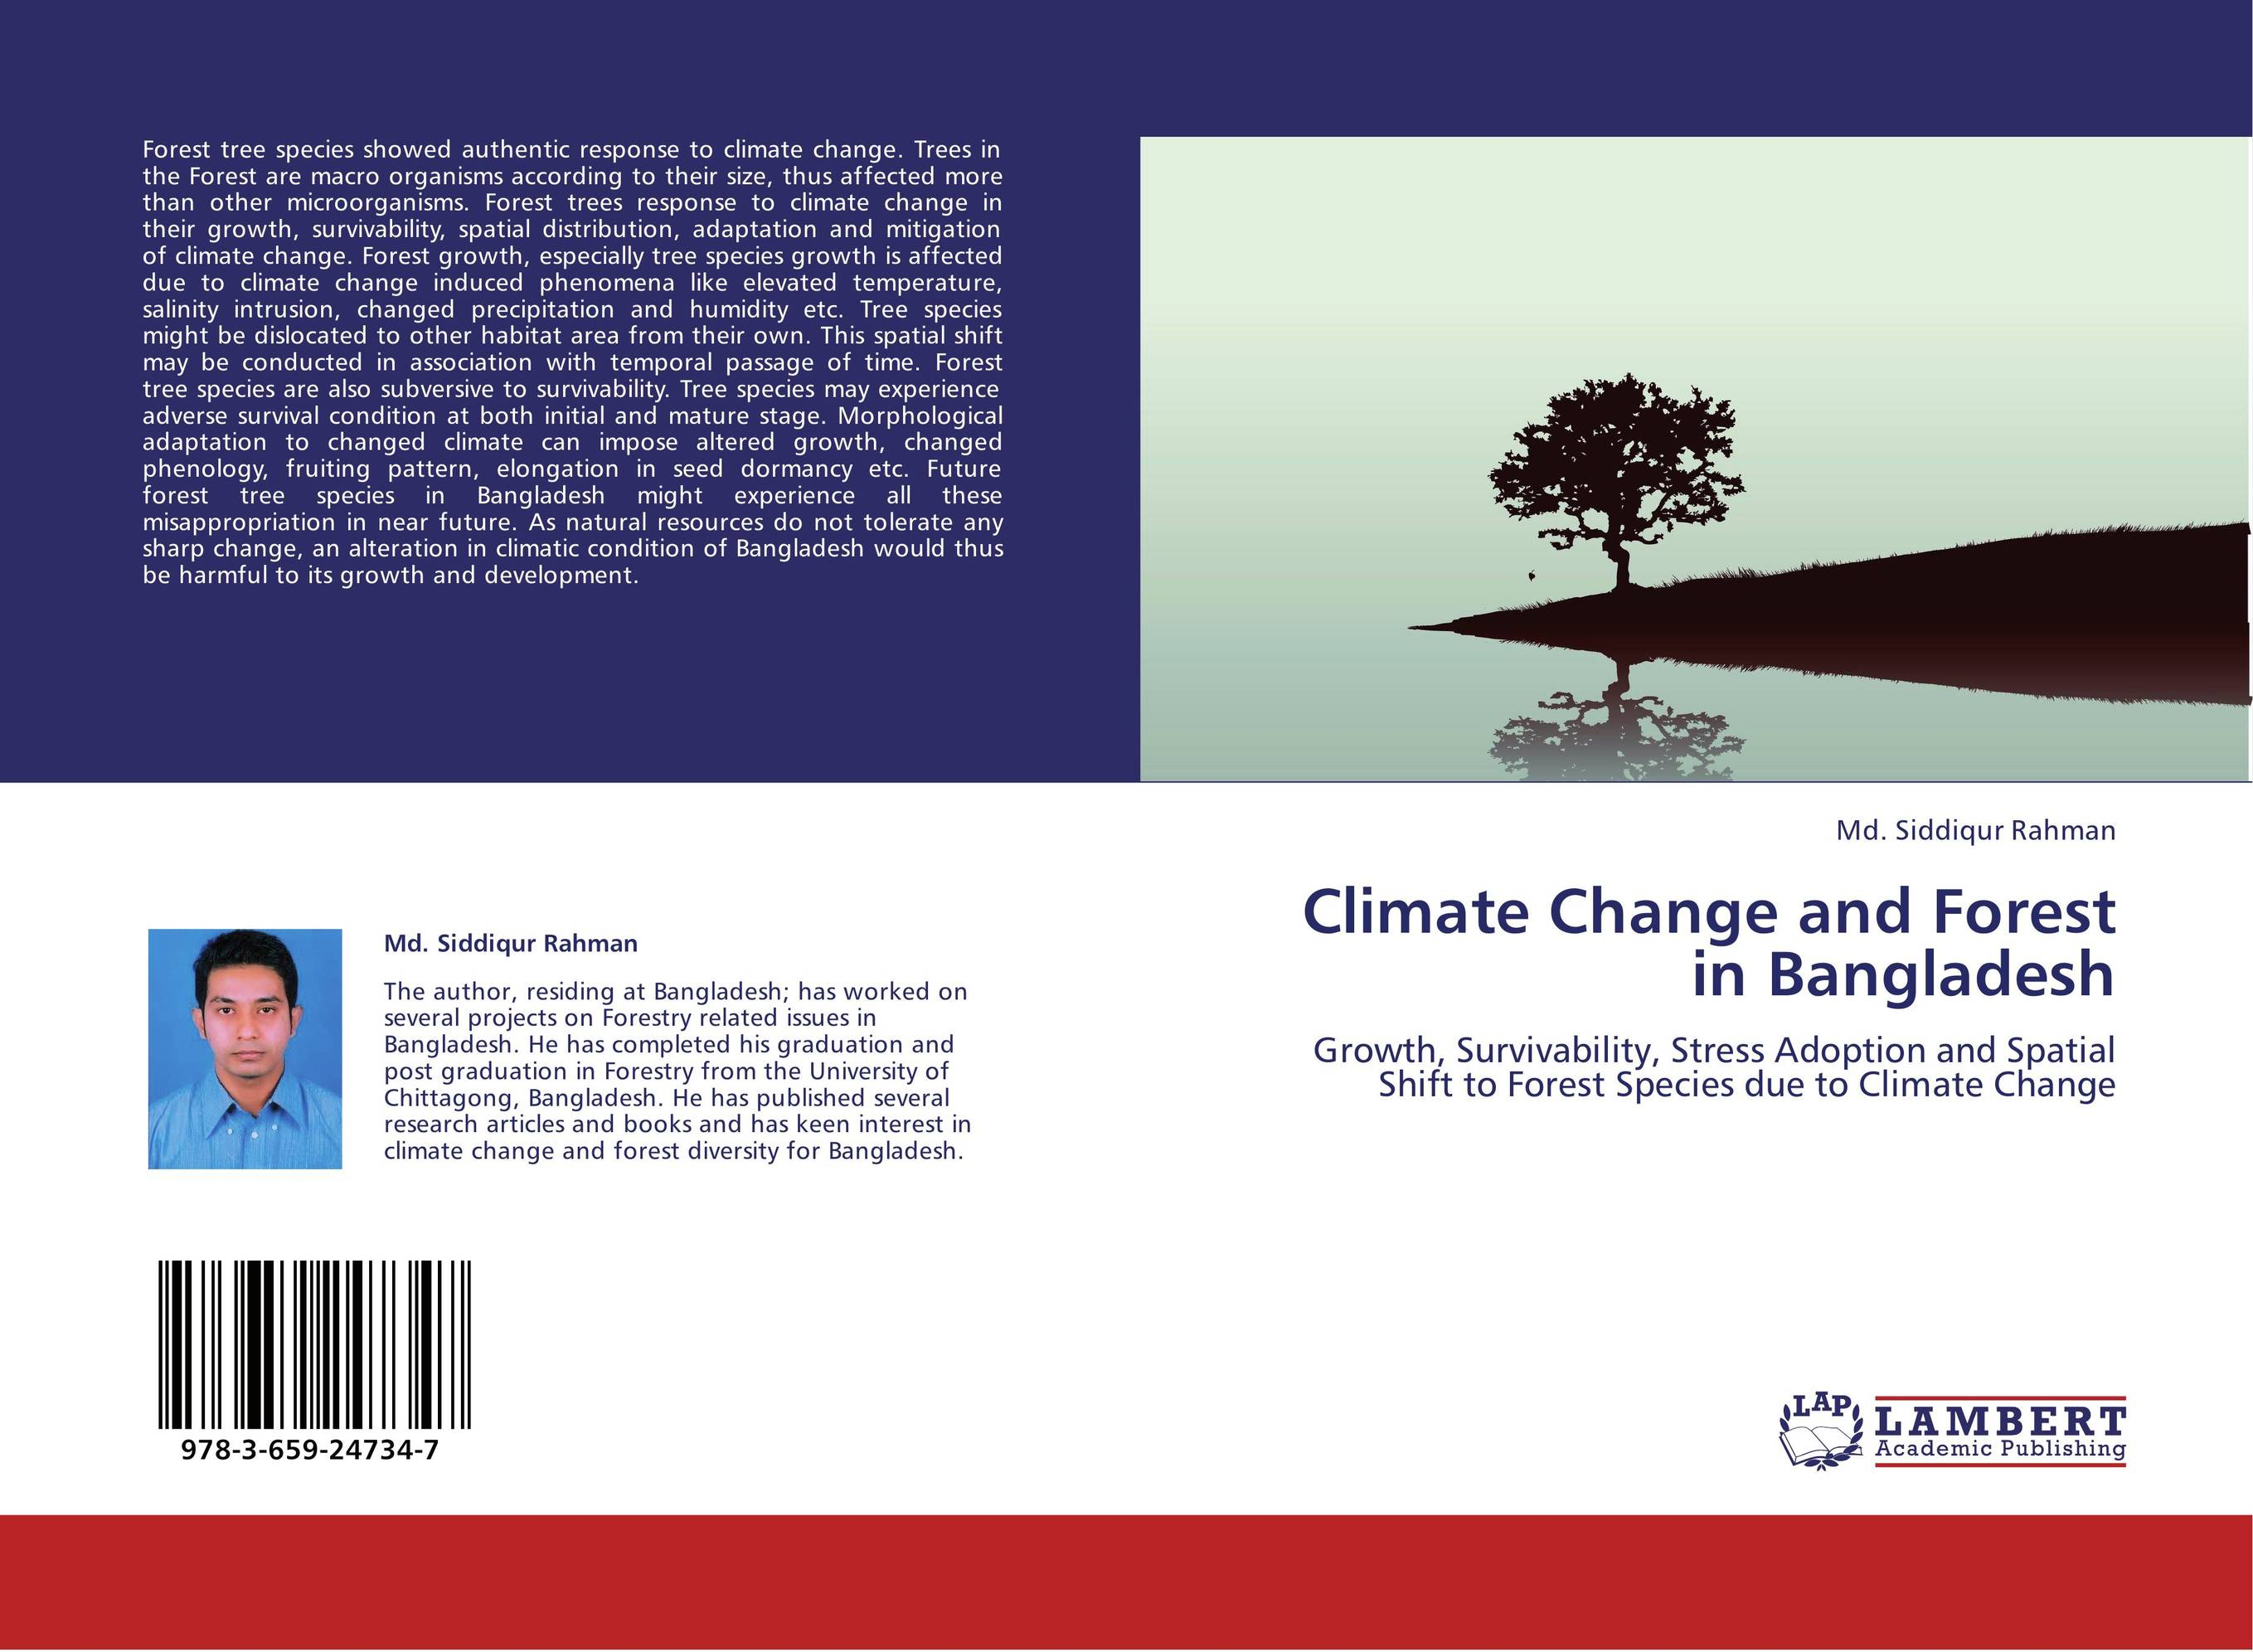 thesis on climate change in bangladesh Climate change is one of the most important issues to tackle this generation and possibly any generation in history bangladesh is a very low energy consuming country, it is pursuing a low carbon.